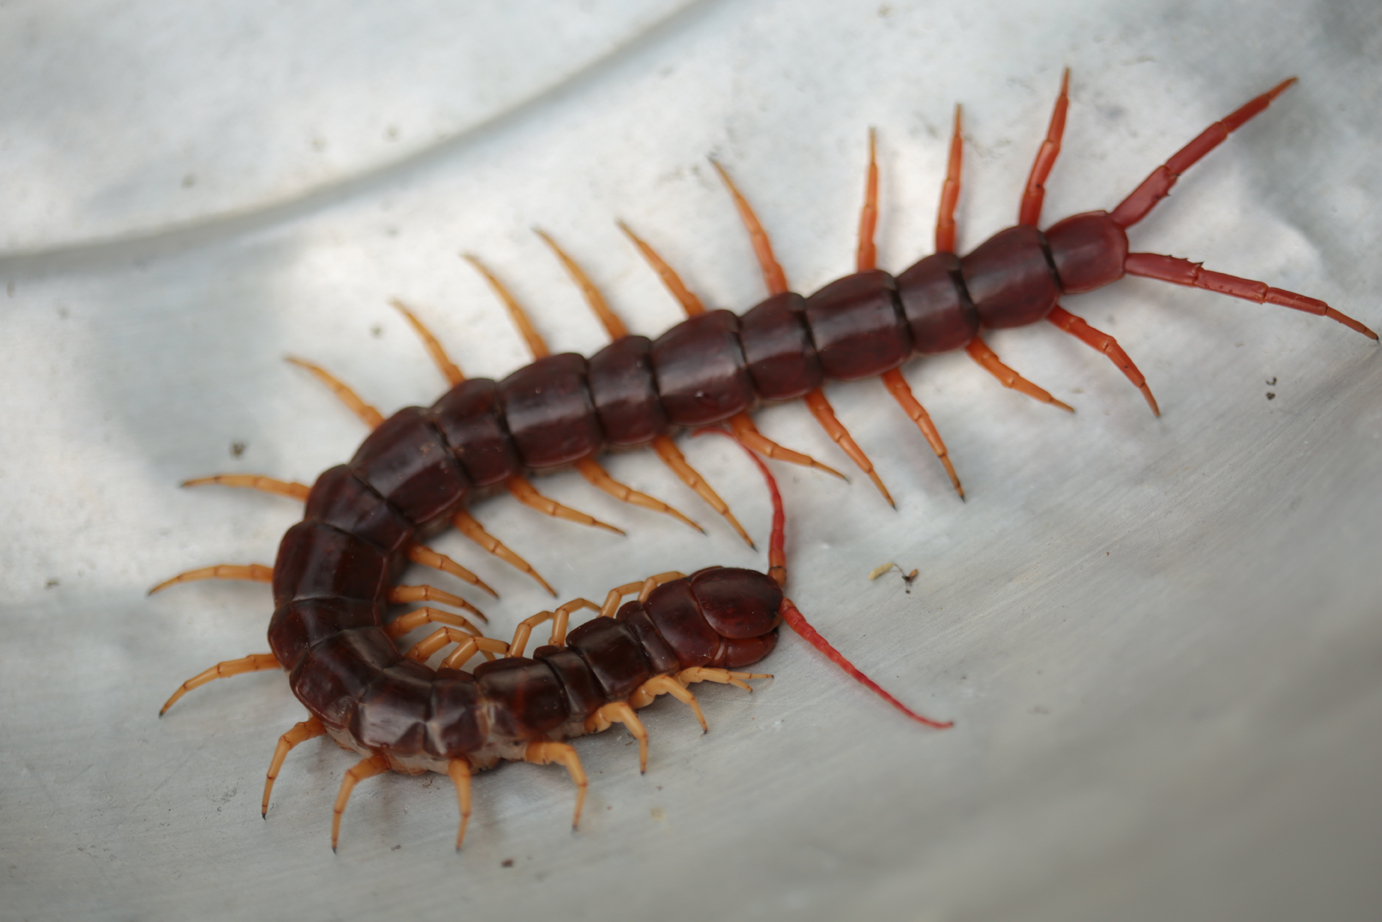 How to Exterminate Centipedes Fast